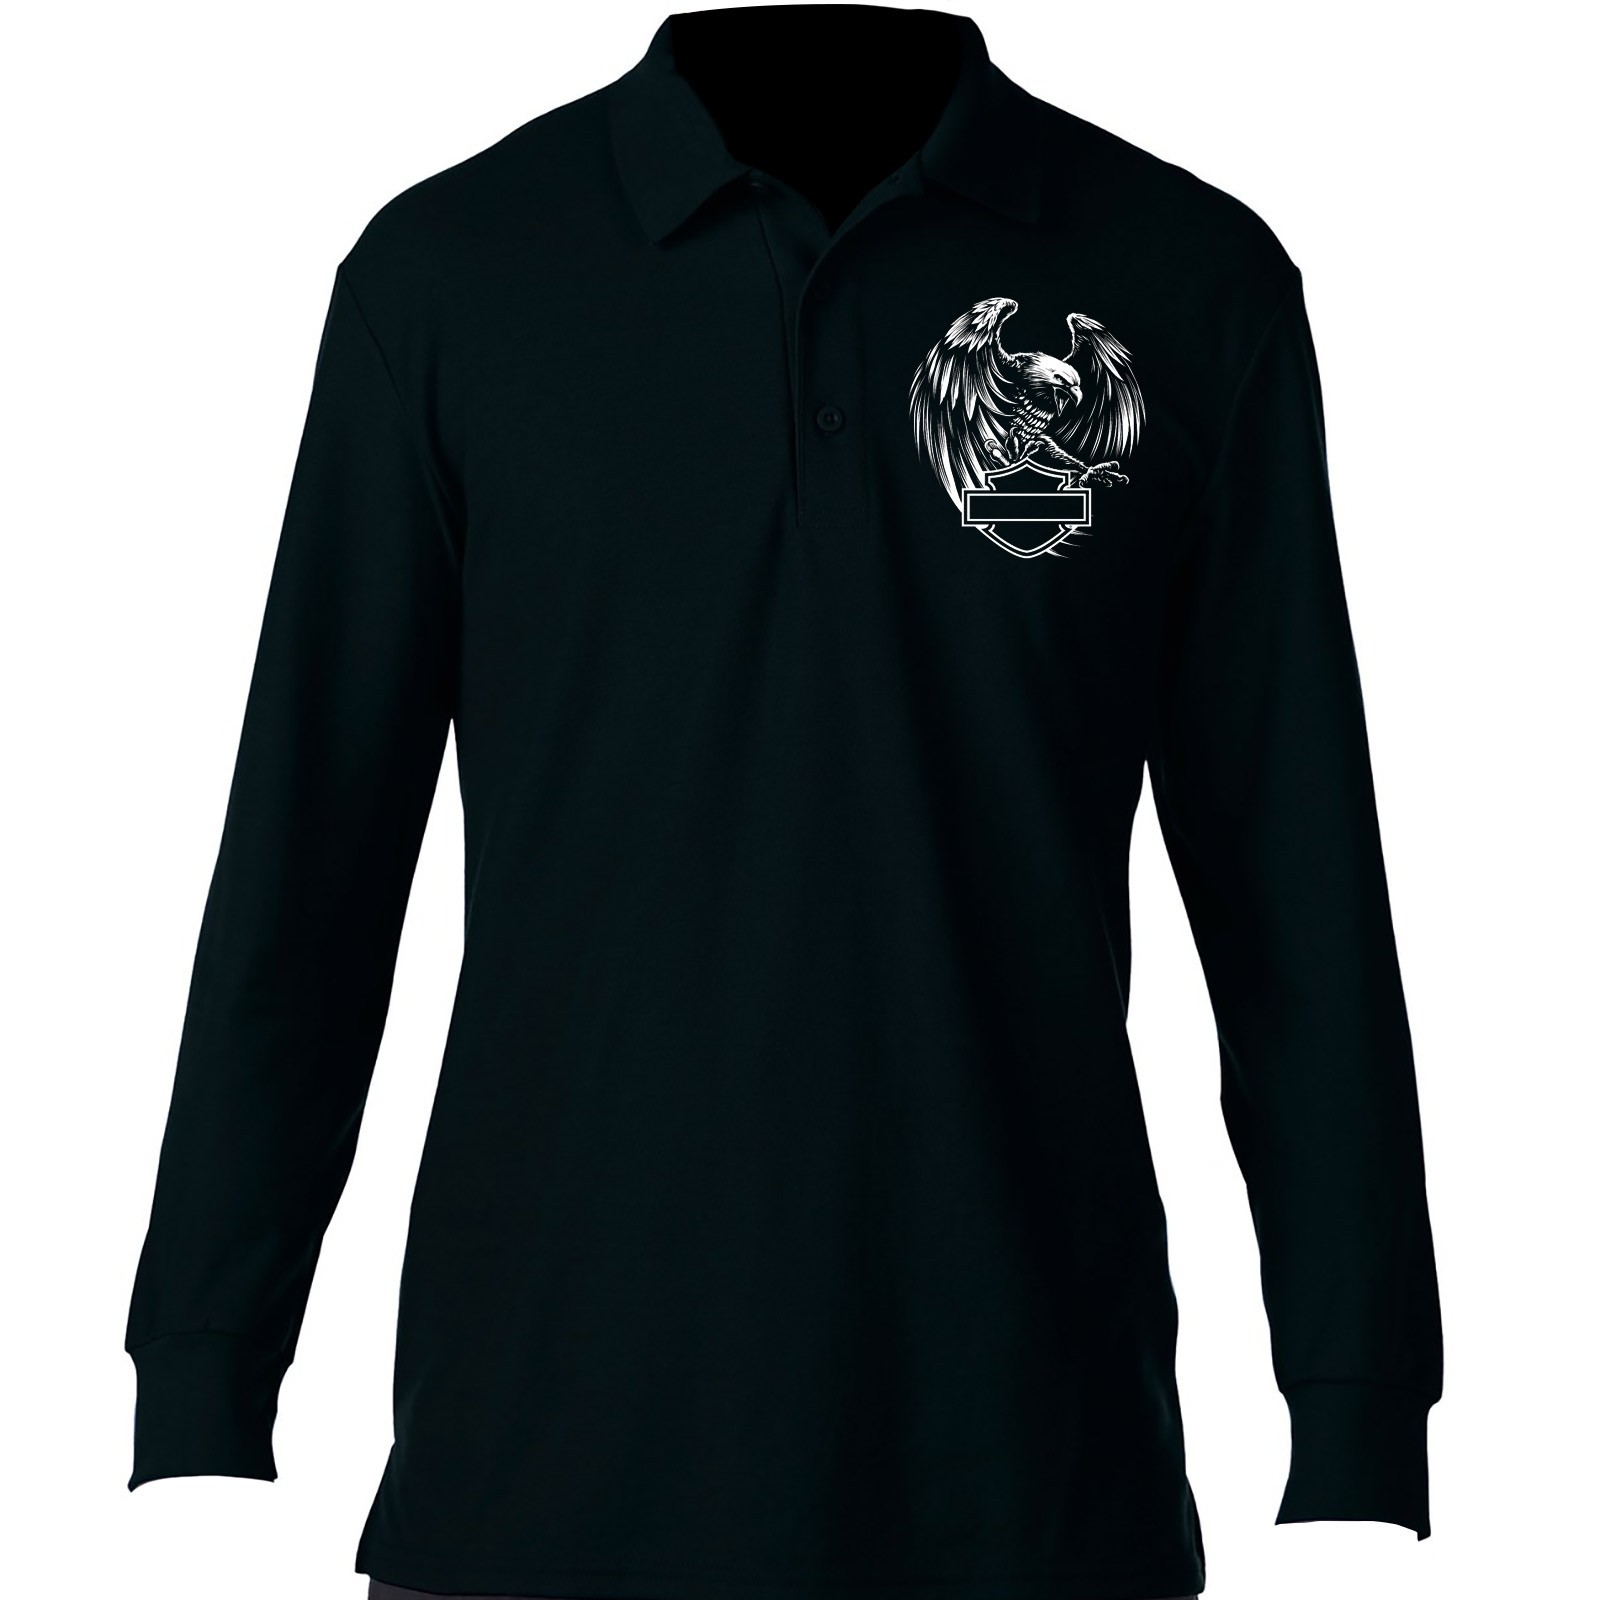 Harley-Davidson Men's Long-Sleeve Sport Shirt - Overseas Tour | Eagle Polo